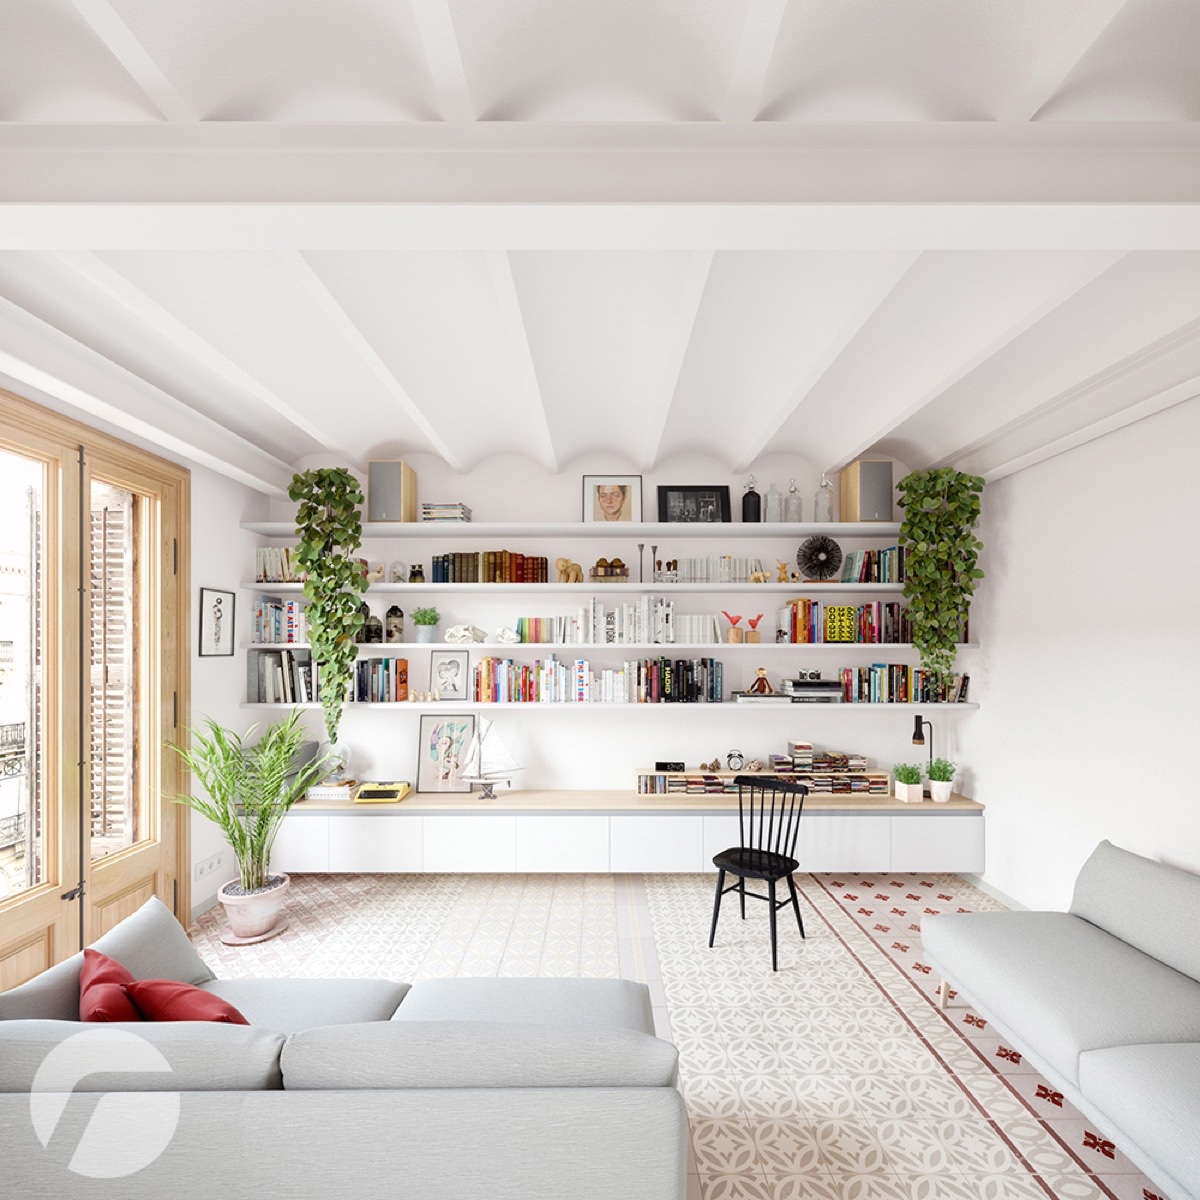 10 stunning apartments that show off the beauty of nordic - Home decor apartment image ...